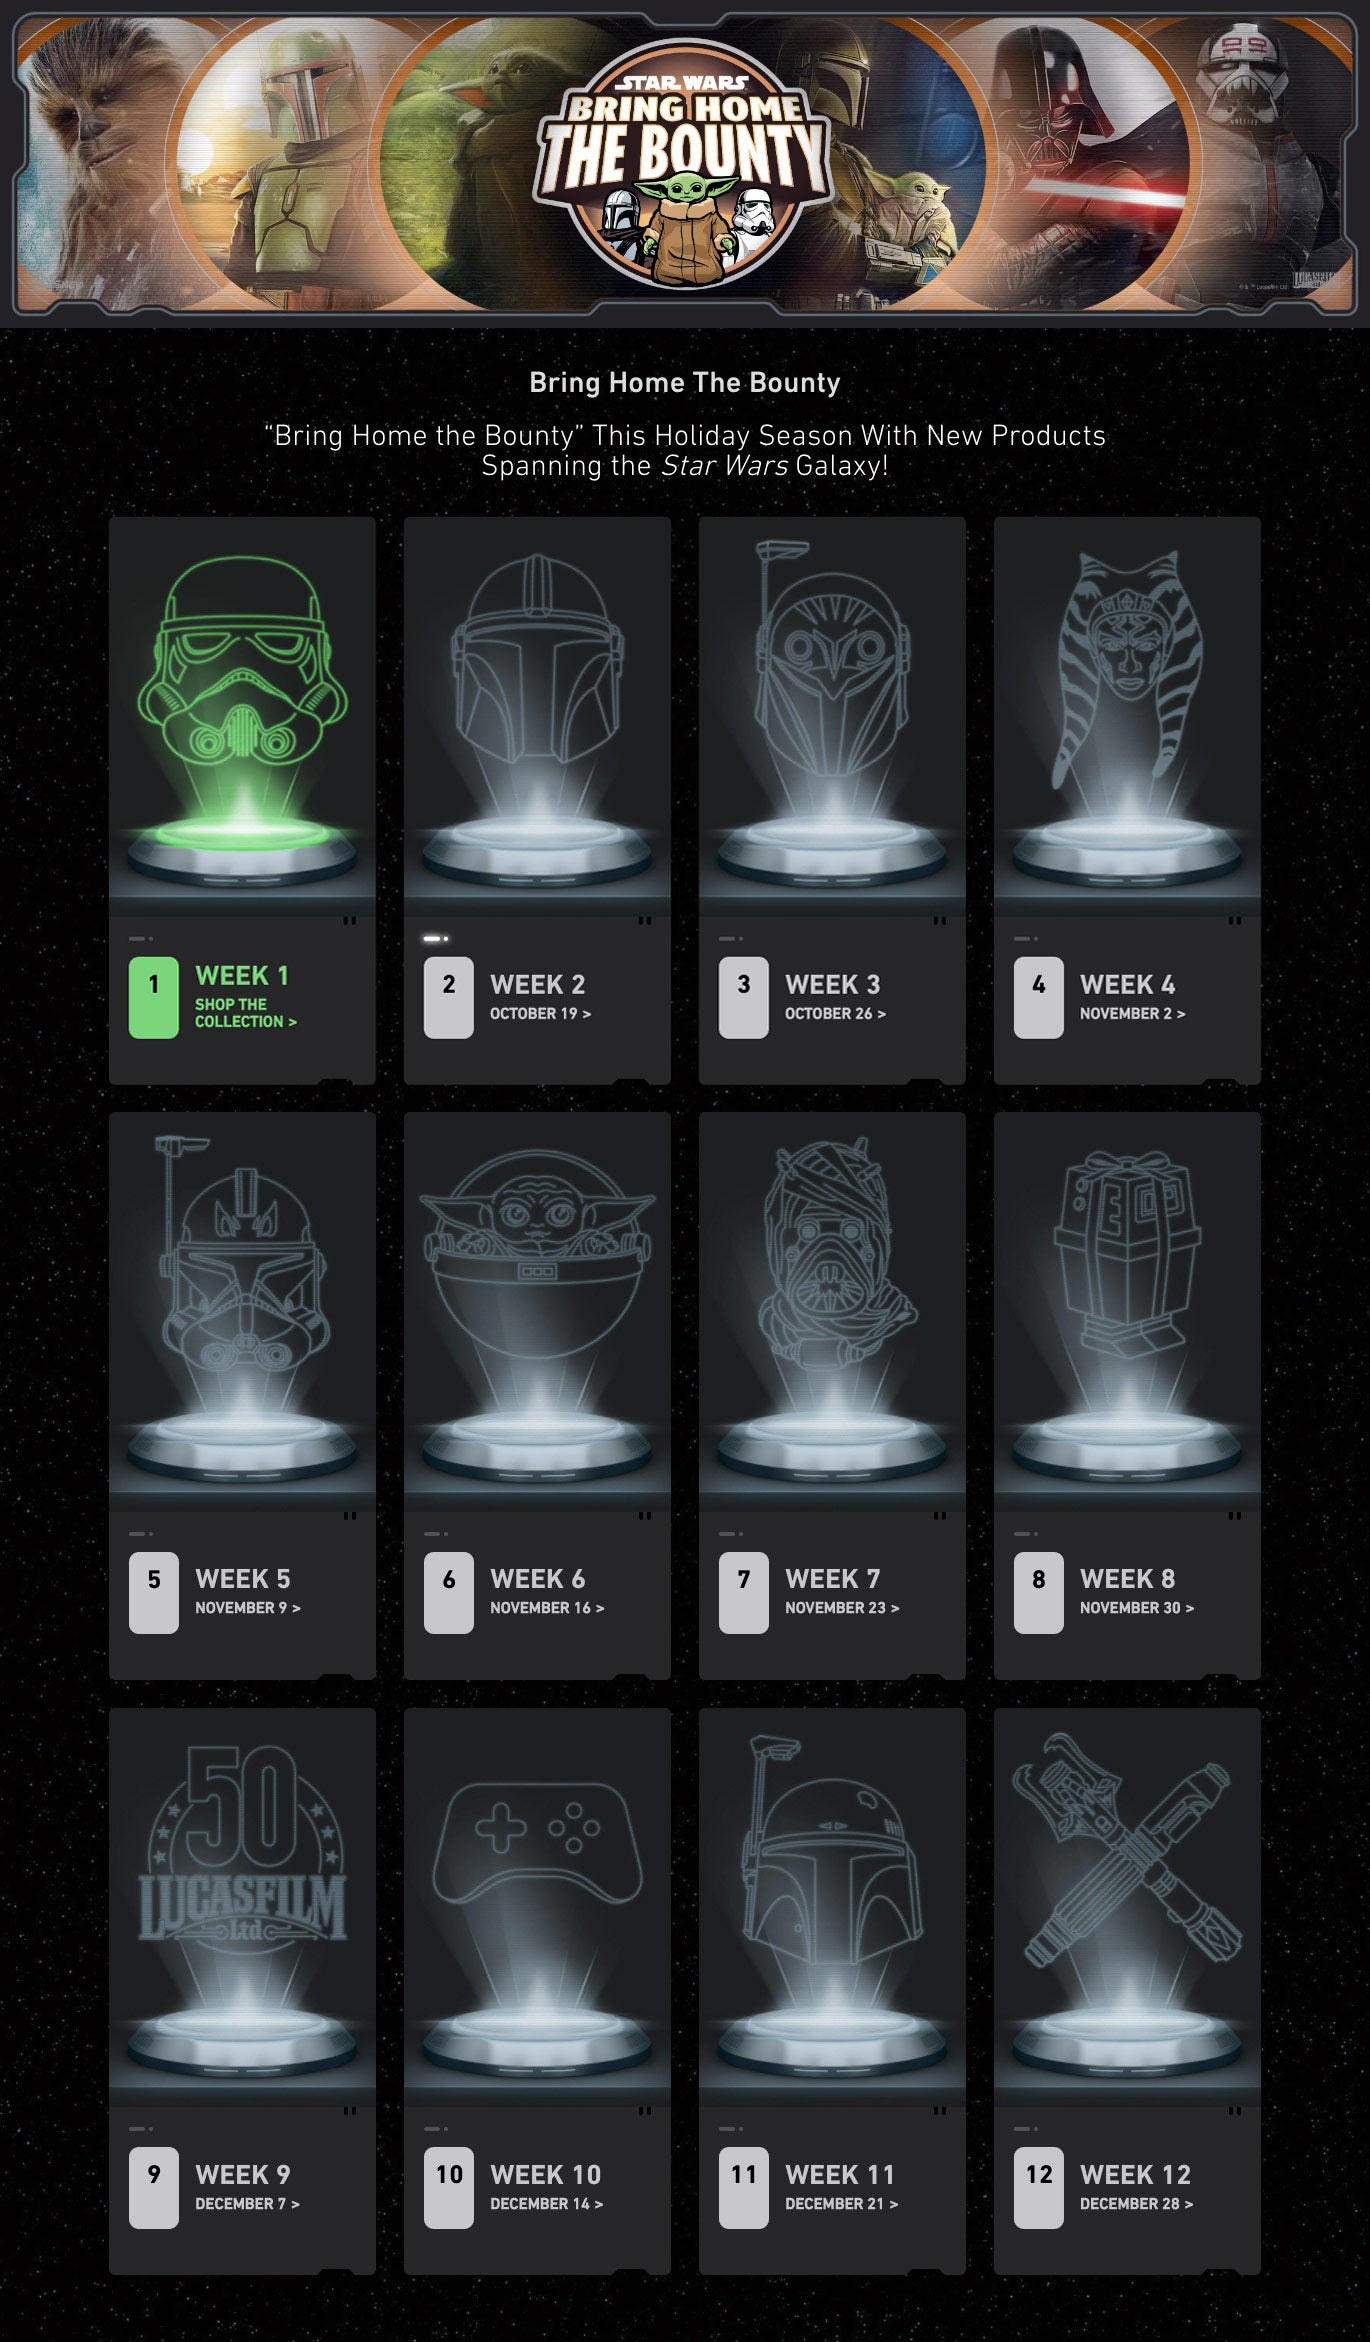 Timeframe showing Star Wars product announcement dates. Image Credit: Star Wars